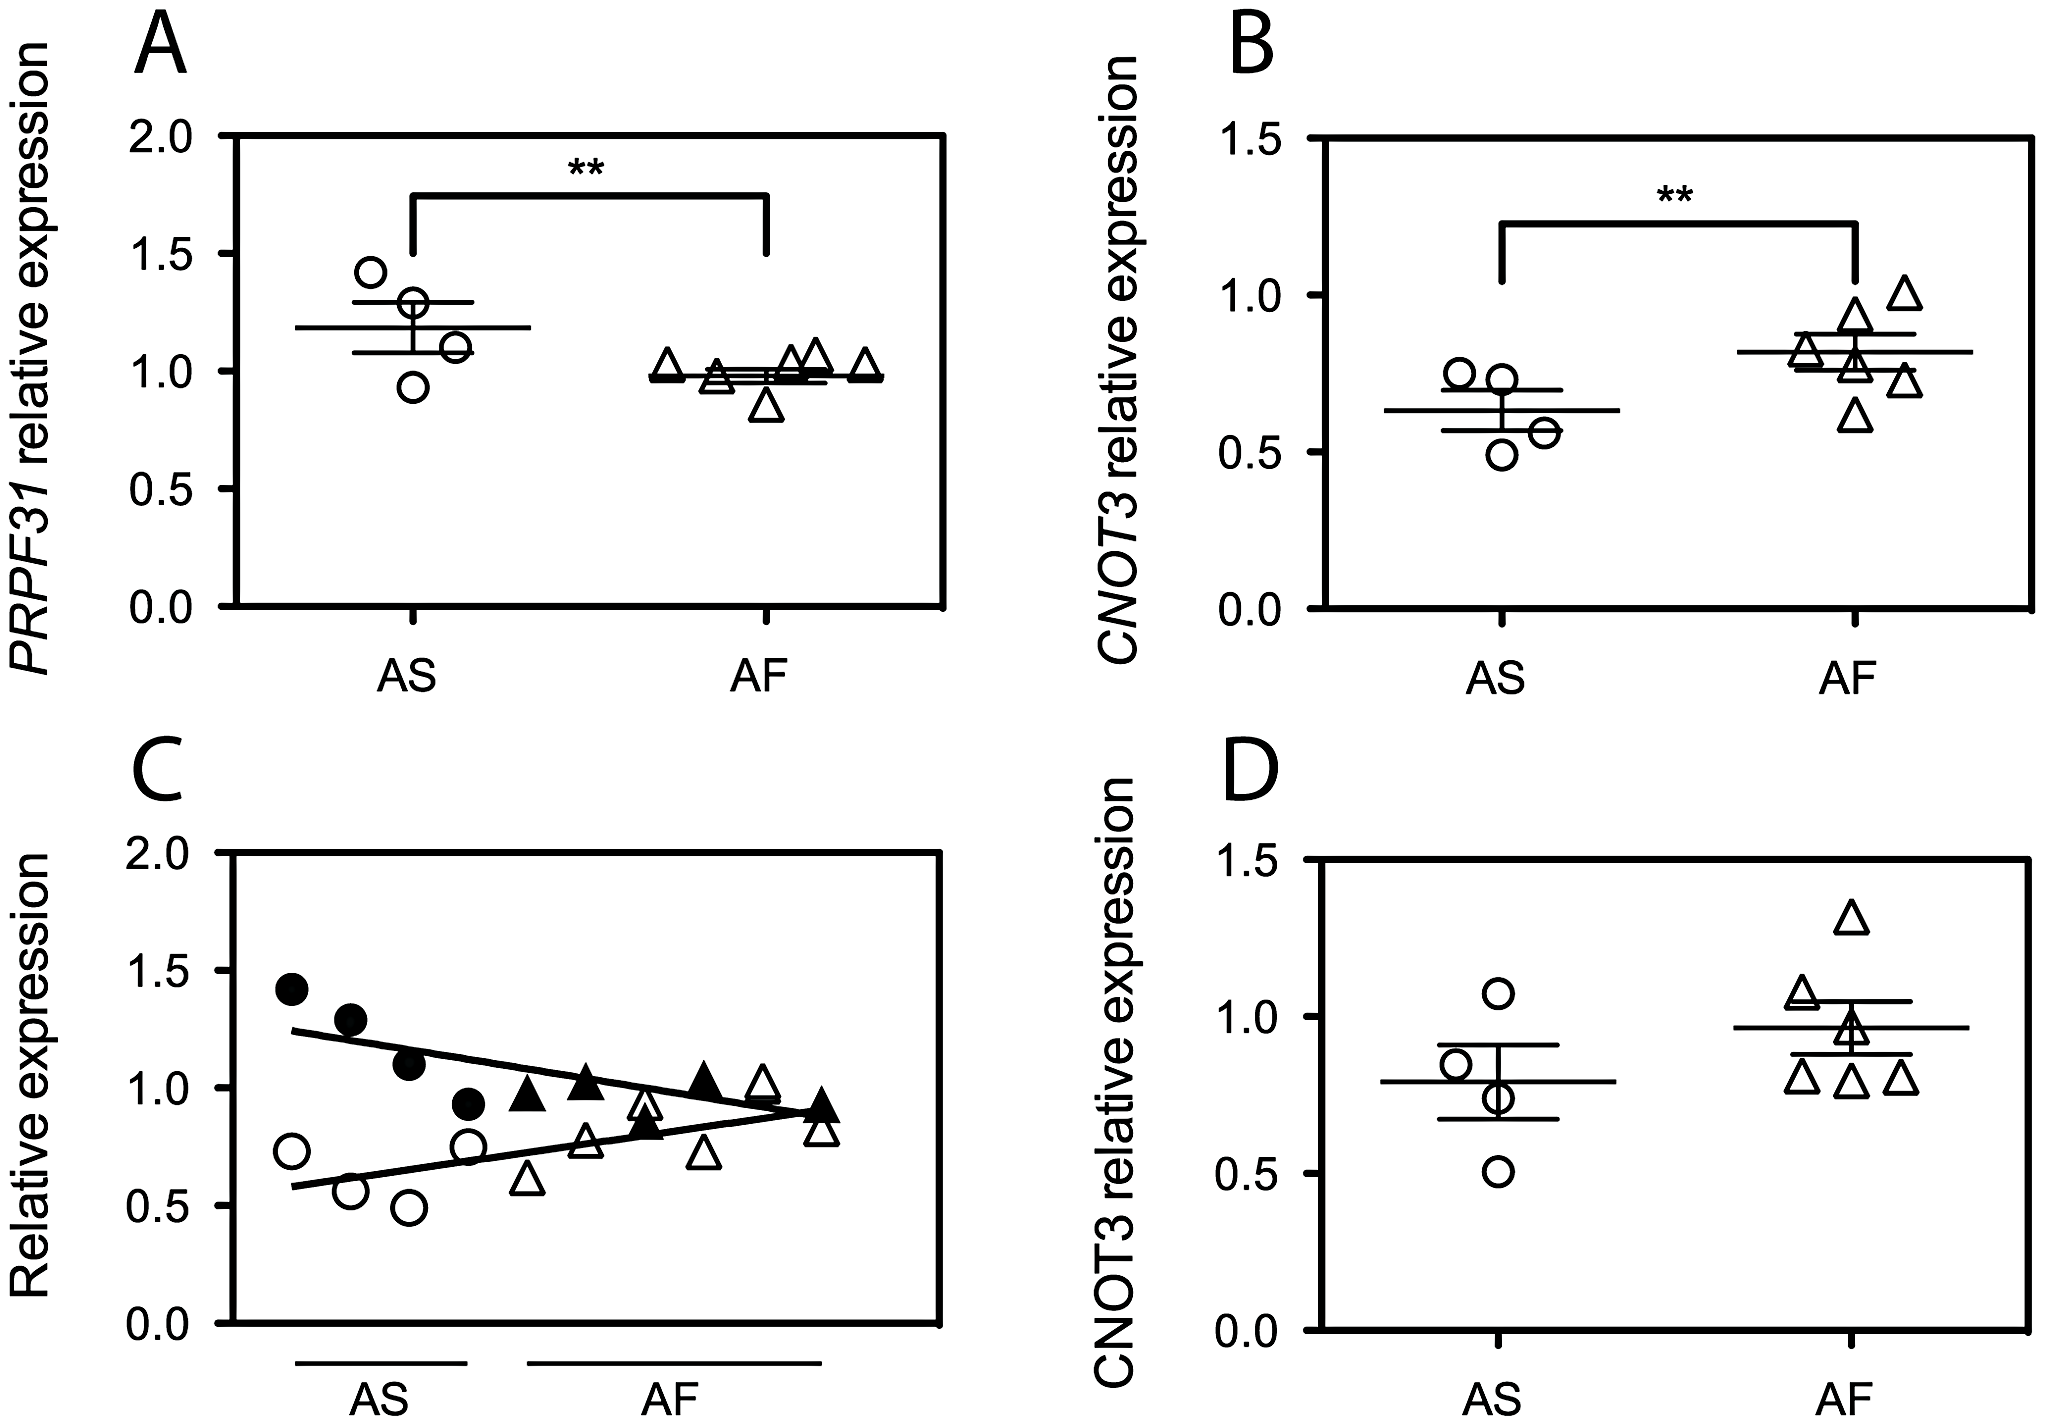 <i>CNOT3</i> shows an opposite trend of expression with respect to that of <i>PRPF31</i> between the asymptomatic (AS) and affected (AF) individuals of the AD5 family.